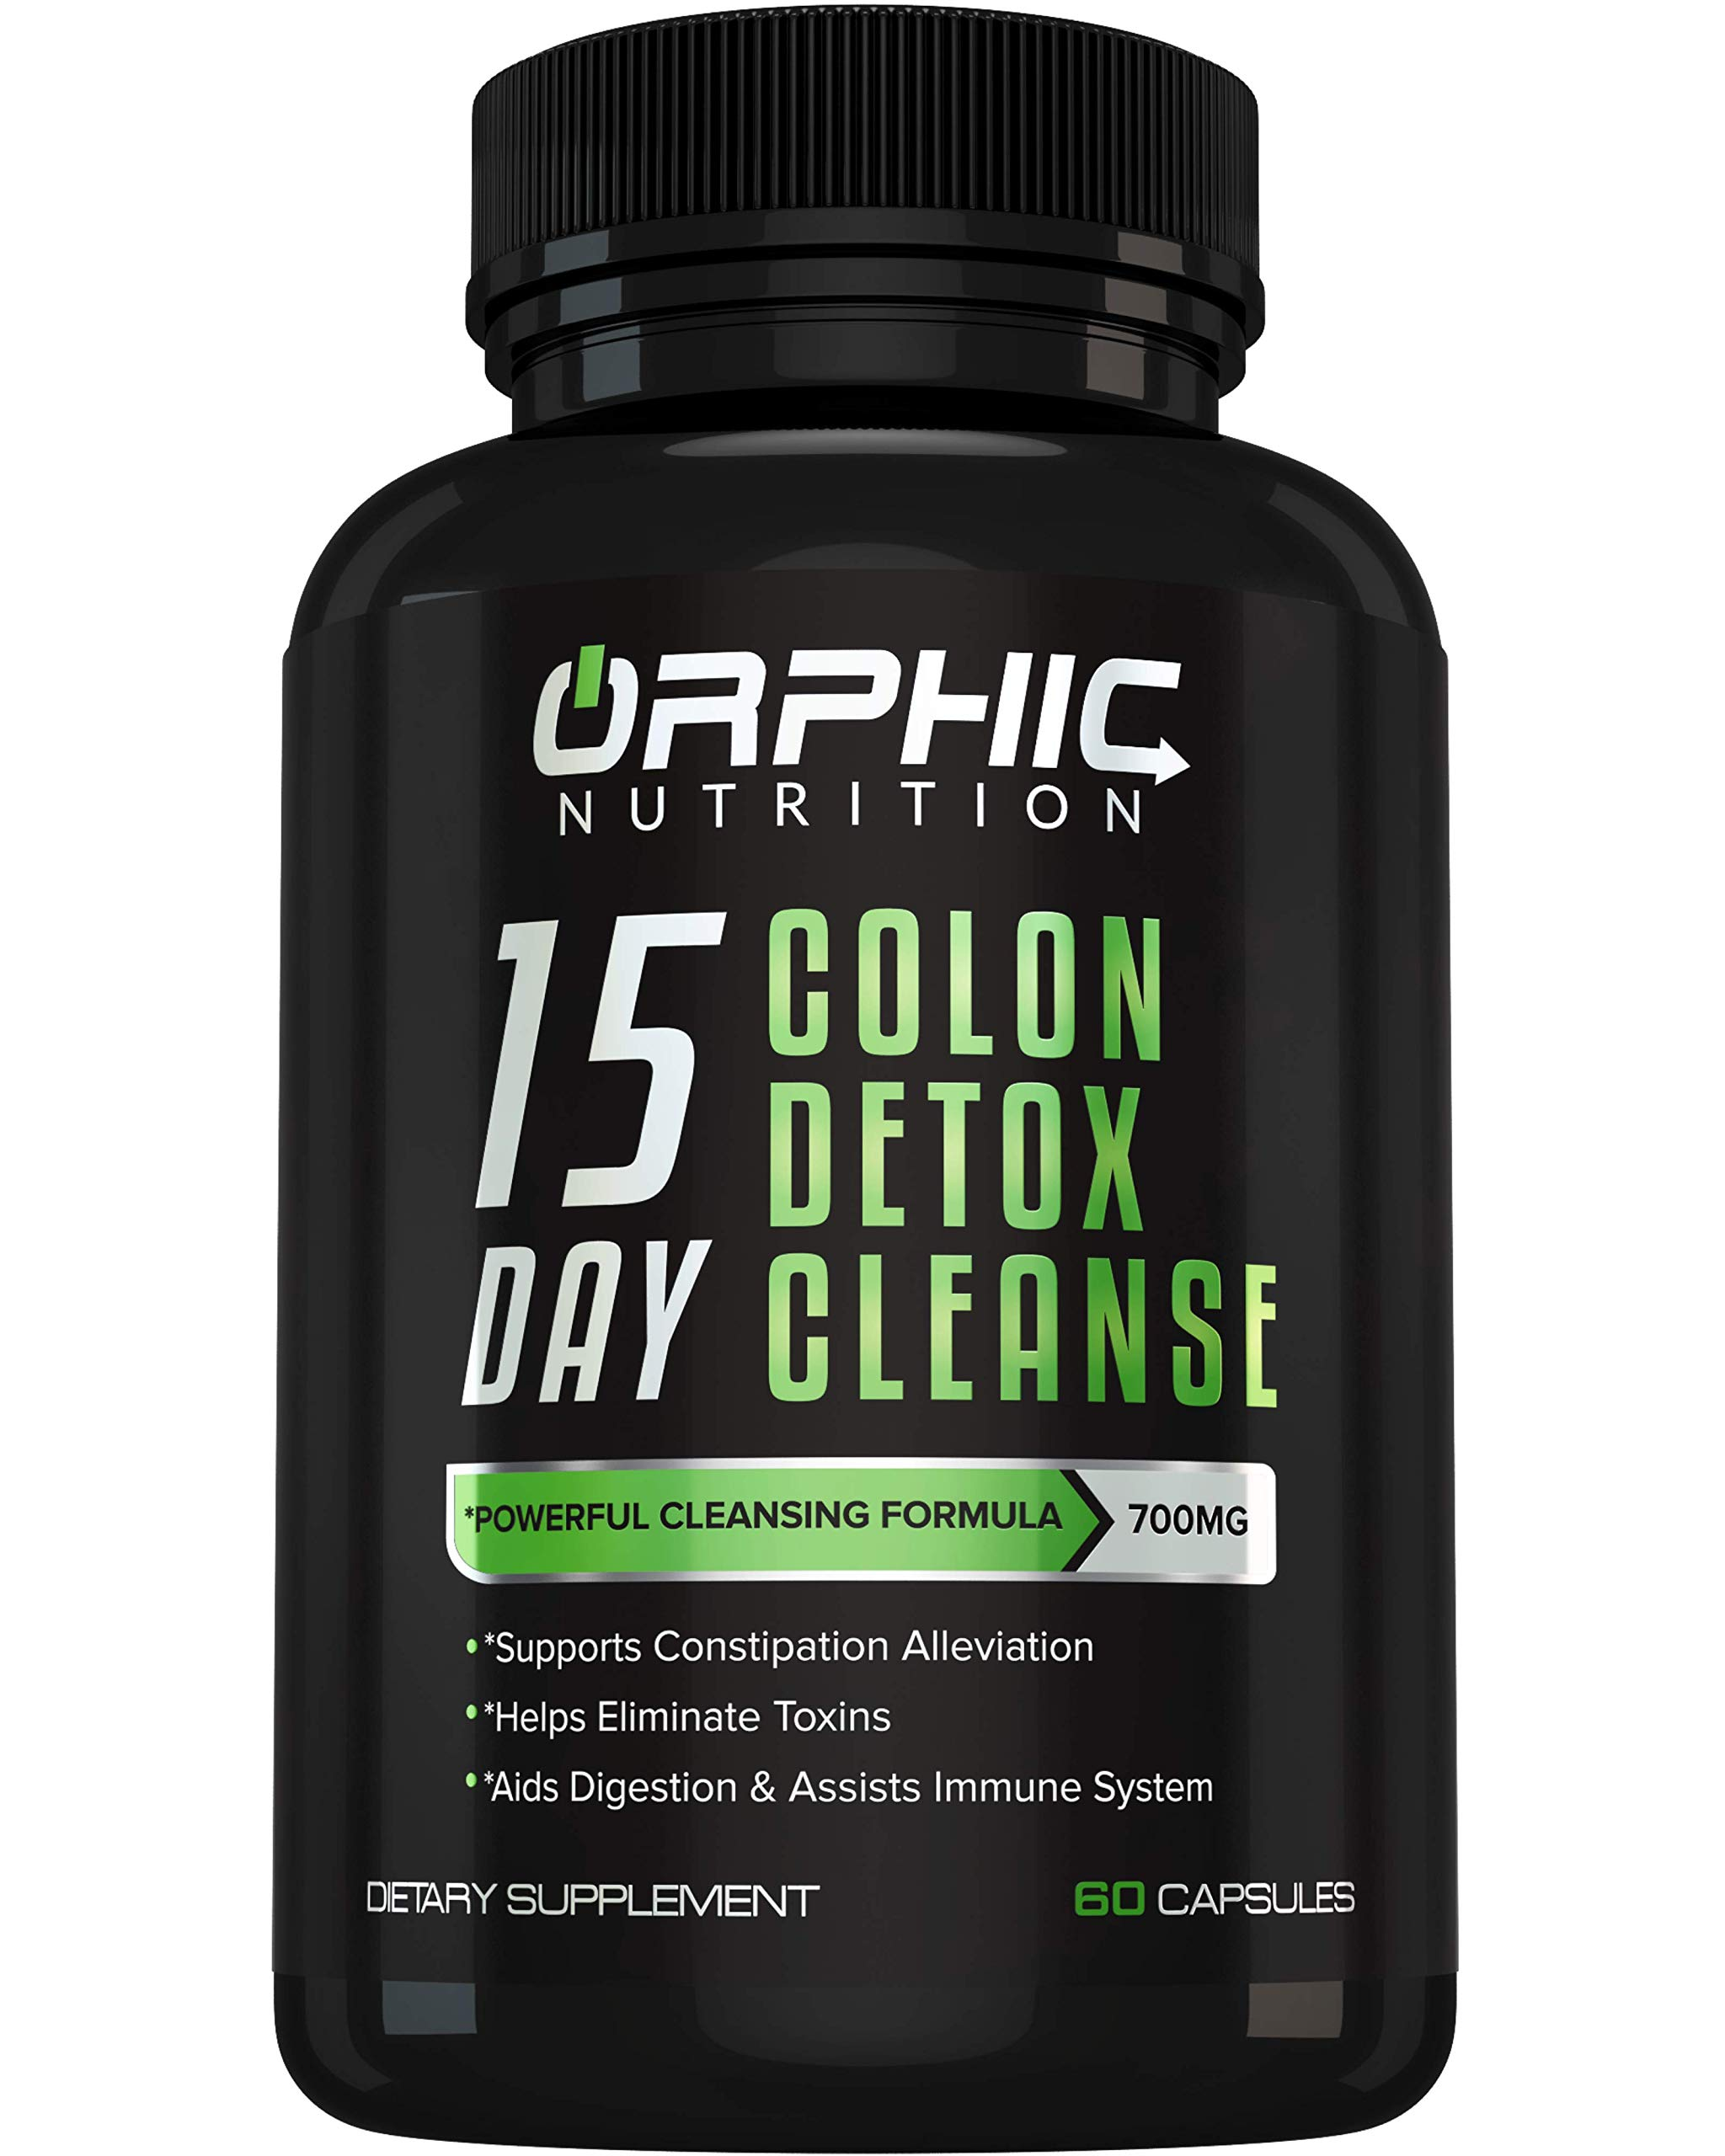 Colon Cleanser Detox for Weight Loss & Bloating Relief - 15 Day Fast-Acting Cleanse for Constipation Relief, Intestinal Cleansing & Detoxification. Formulated with Probiotics to Flush Toxins